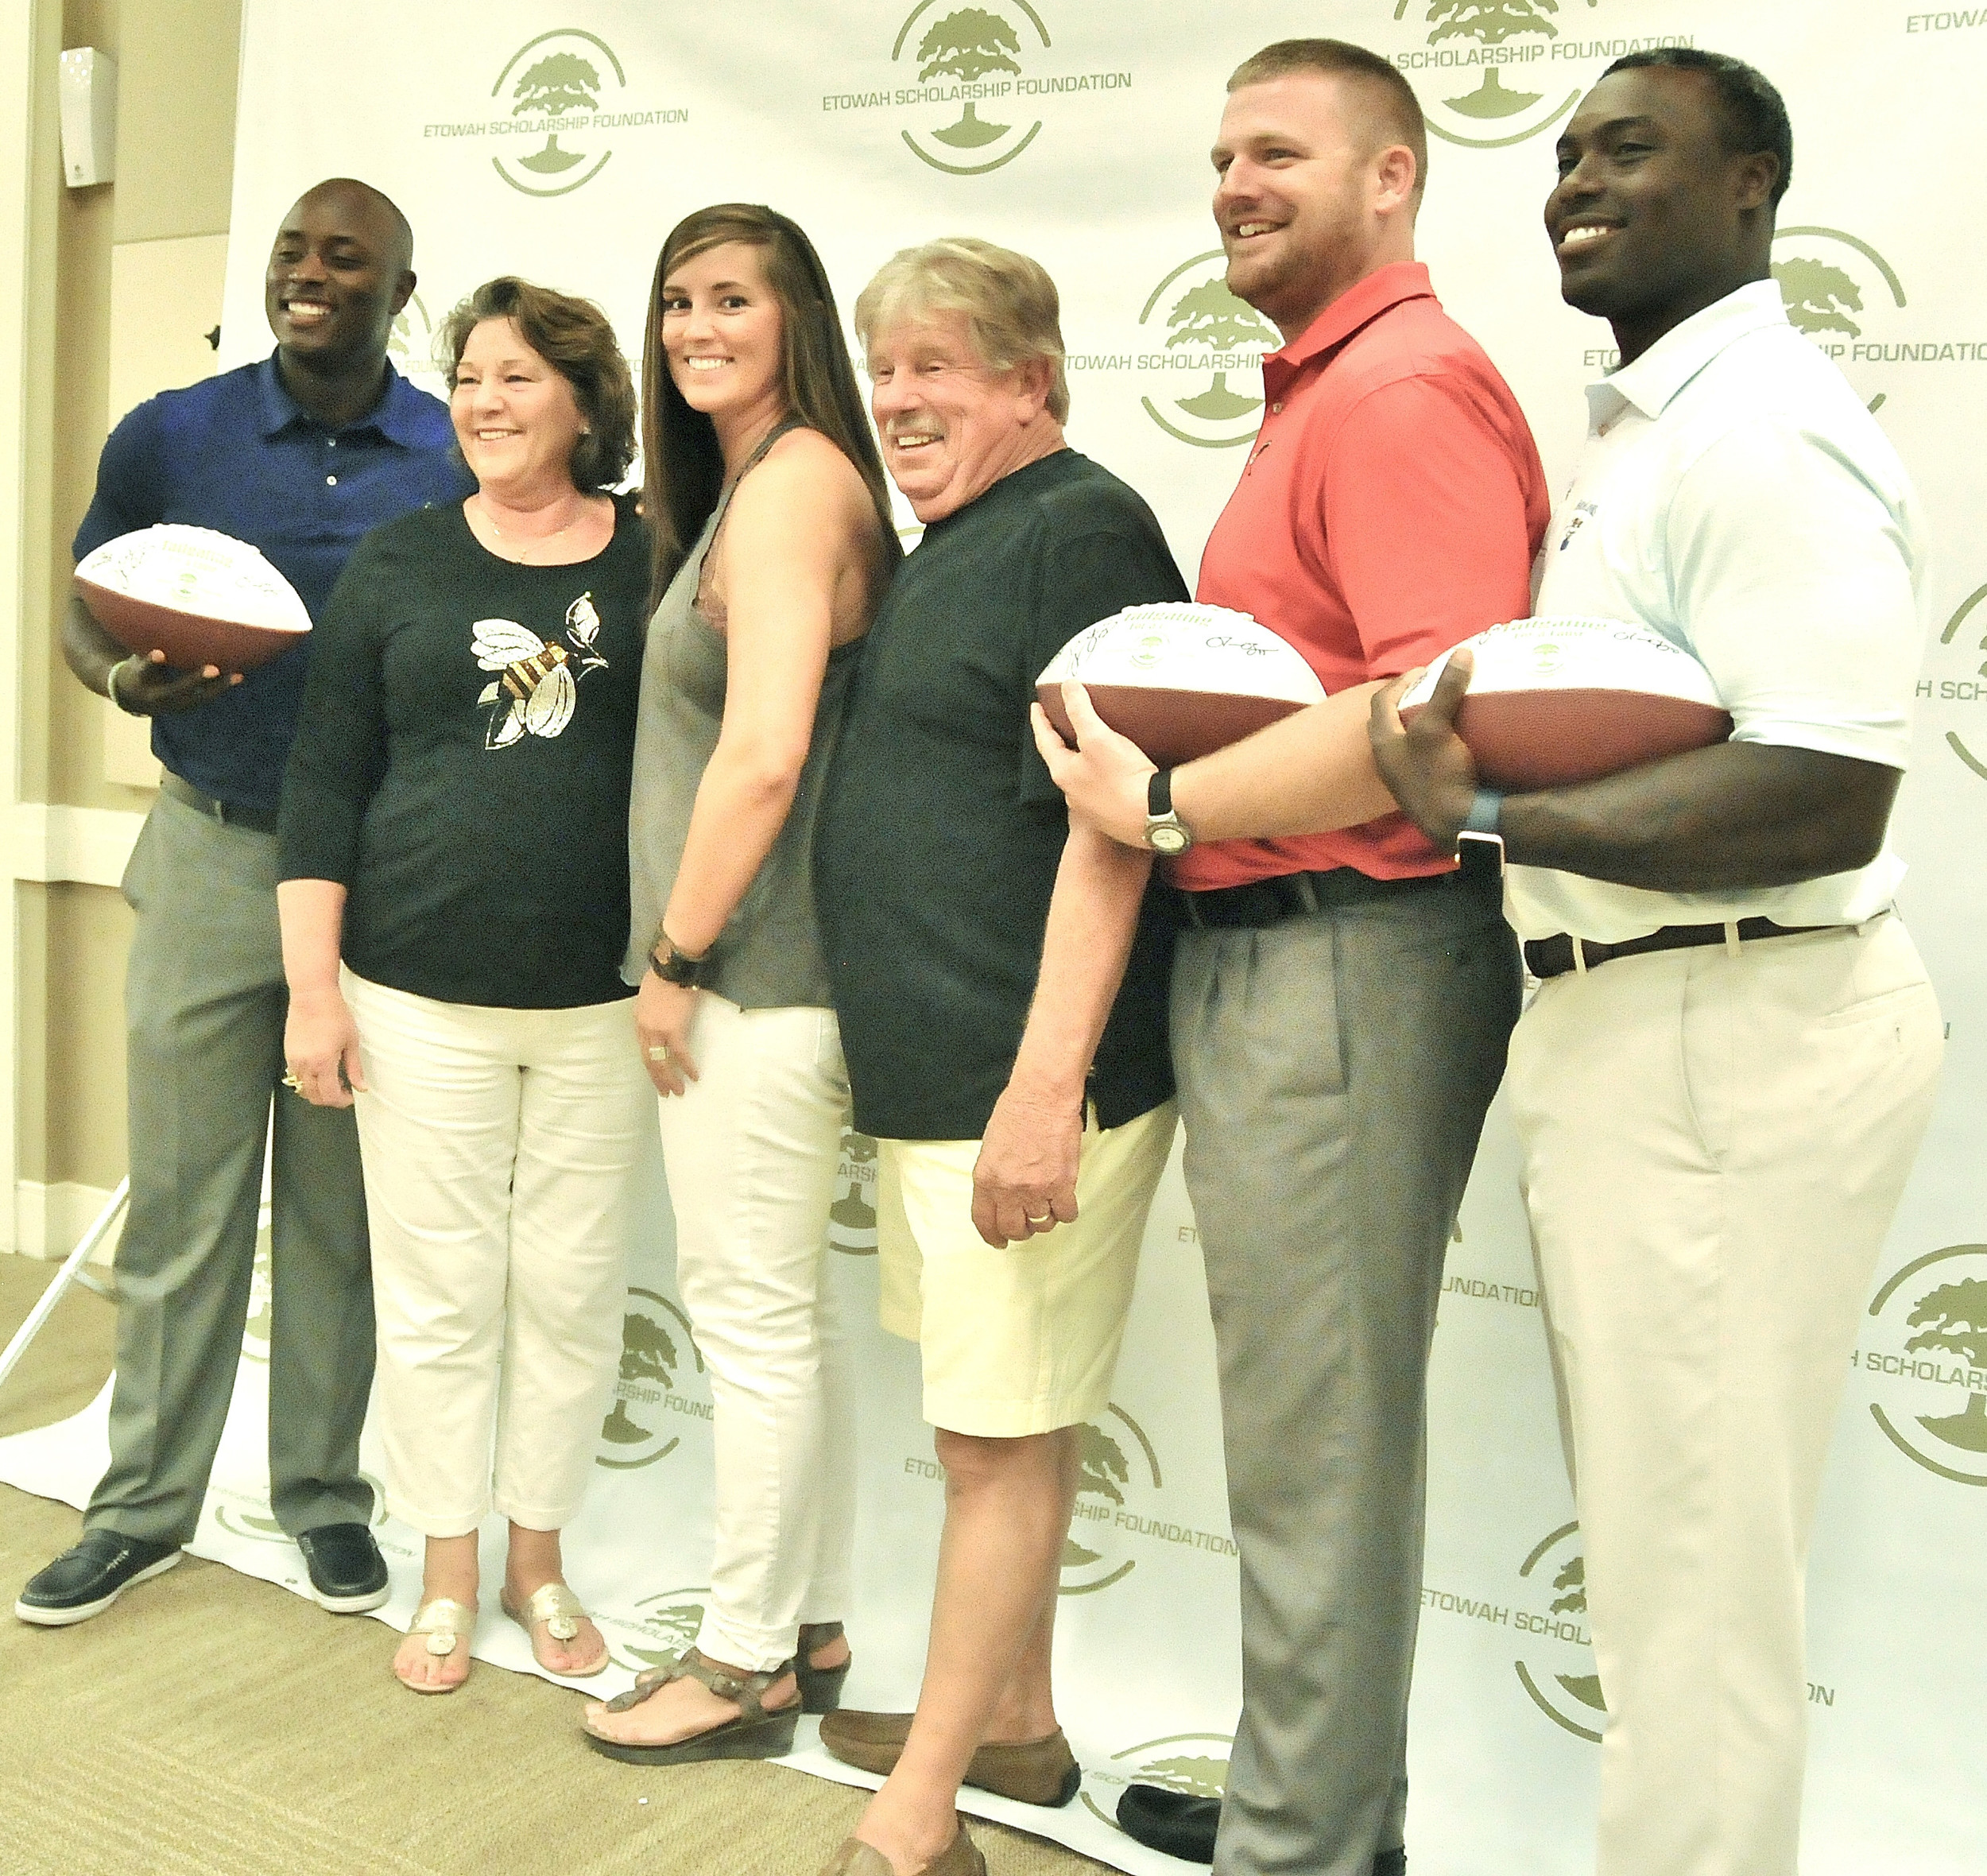 Former football players D.J. Shockley, left, Josh Brock, second from right, and Ronnie Brown, right, pose for photos with a few guests at last year's Tailgating for a Cause, a  fundraiser for the Etowah Scholarship Foundation.